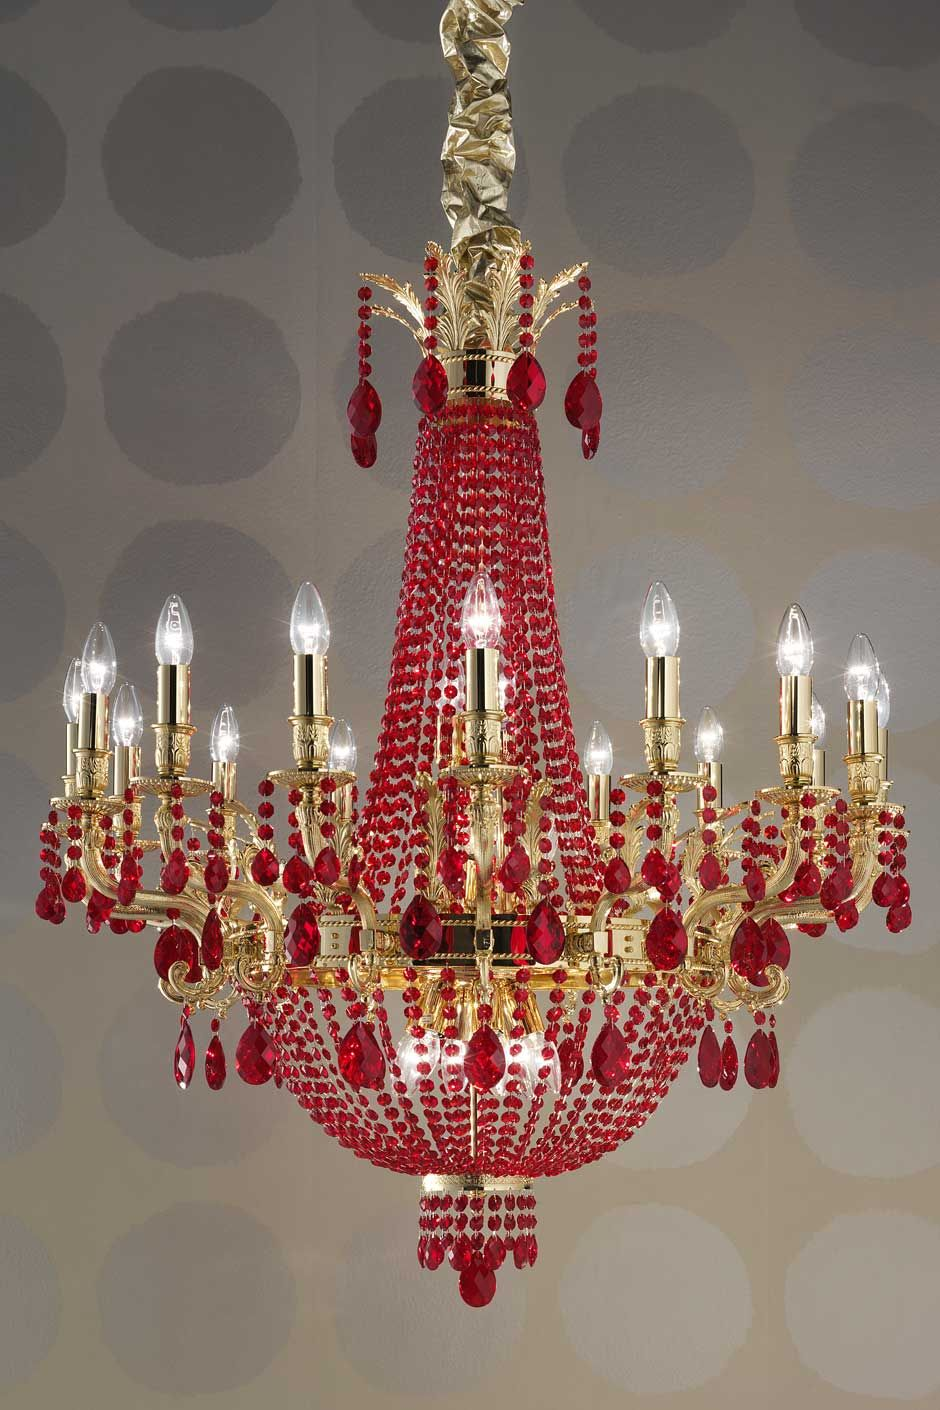 Chandelier Crystal Light Crystal Chandelier Masiero Murano - Red chandelier crystals